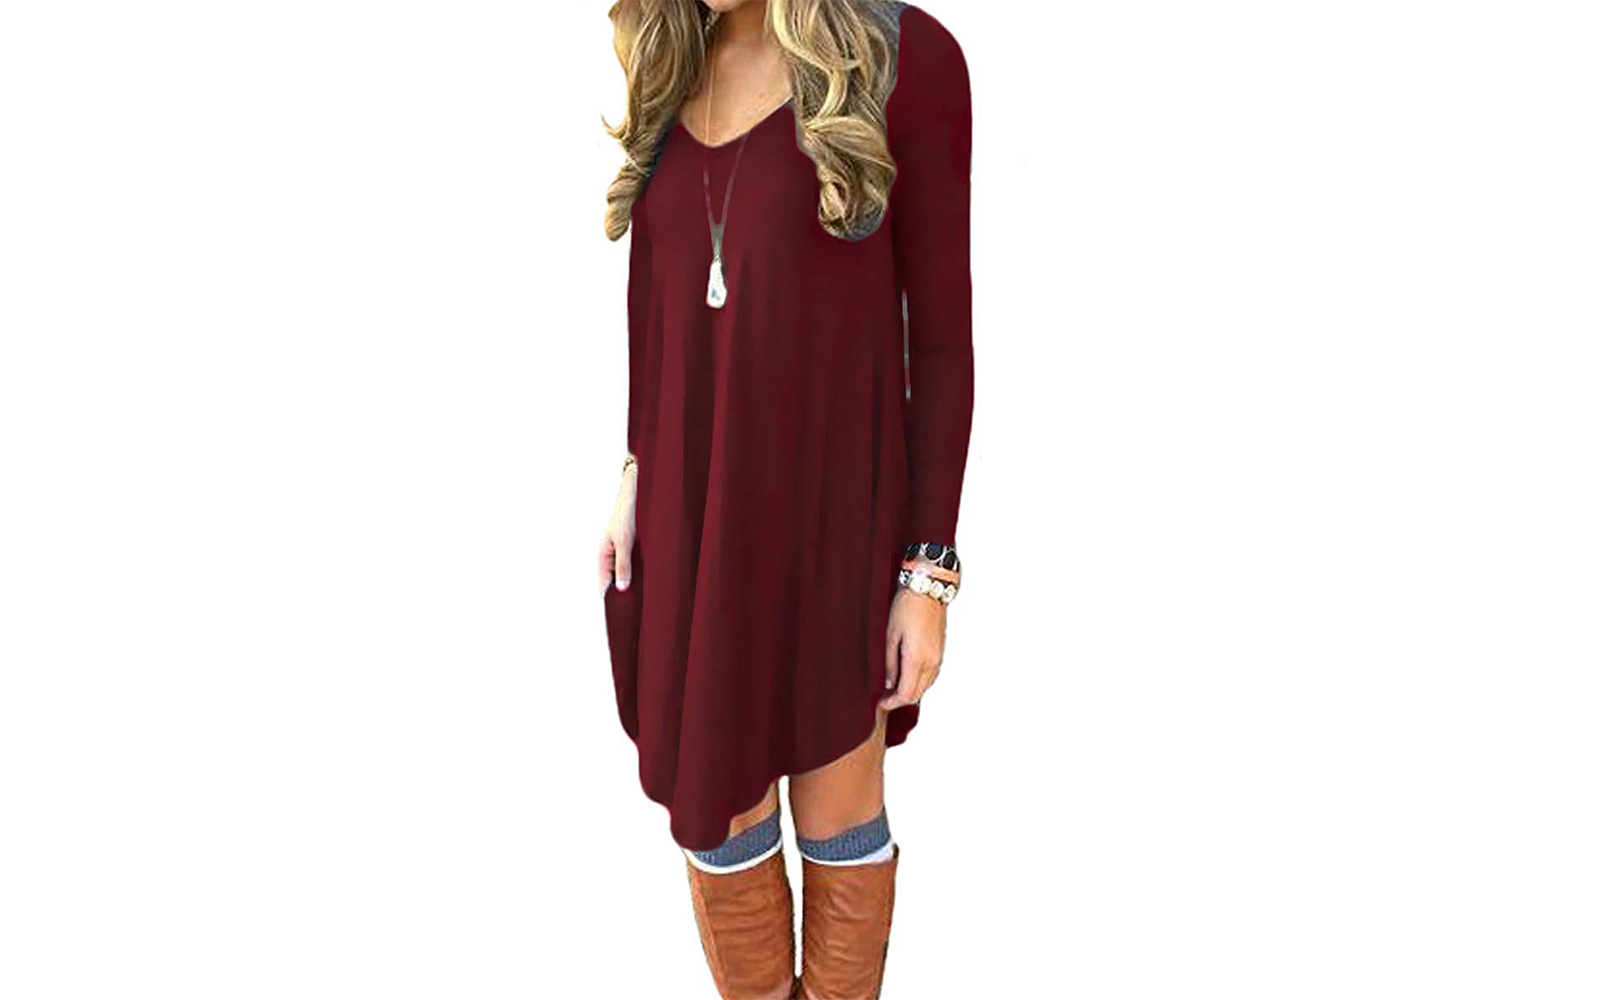 DEARCASE Women's Long Sleeve Casual Loose T-Shirt Dress